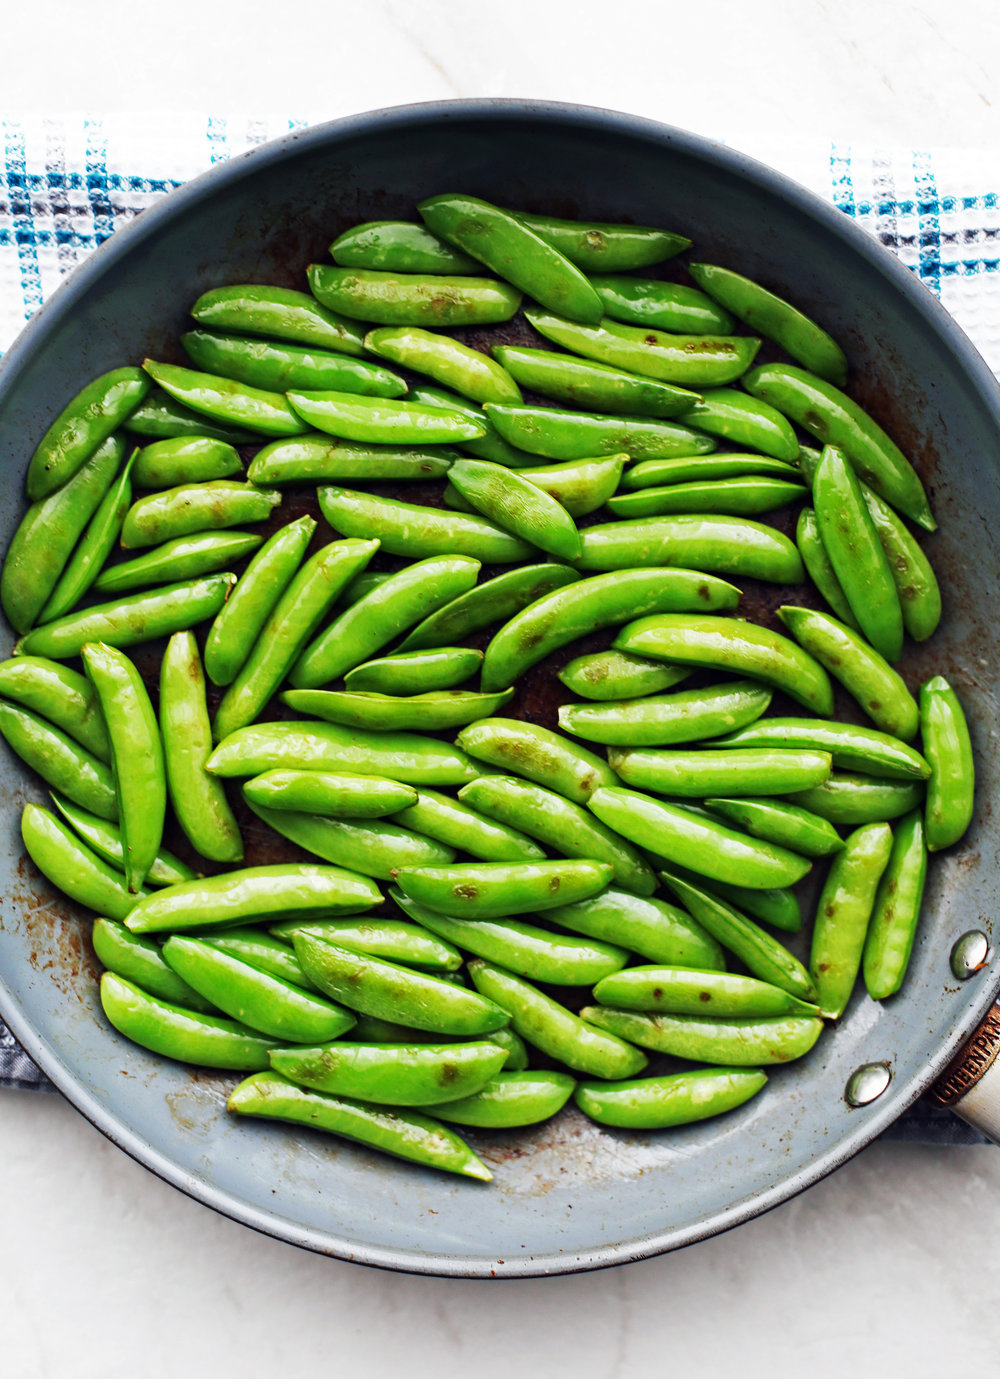 Sauteed sugar snap peas in a blue frying pan.